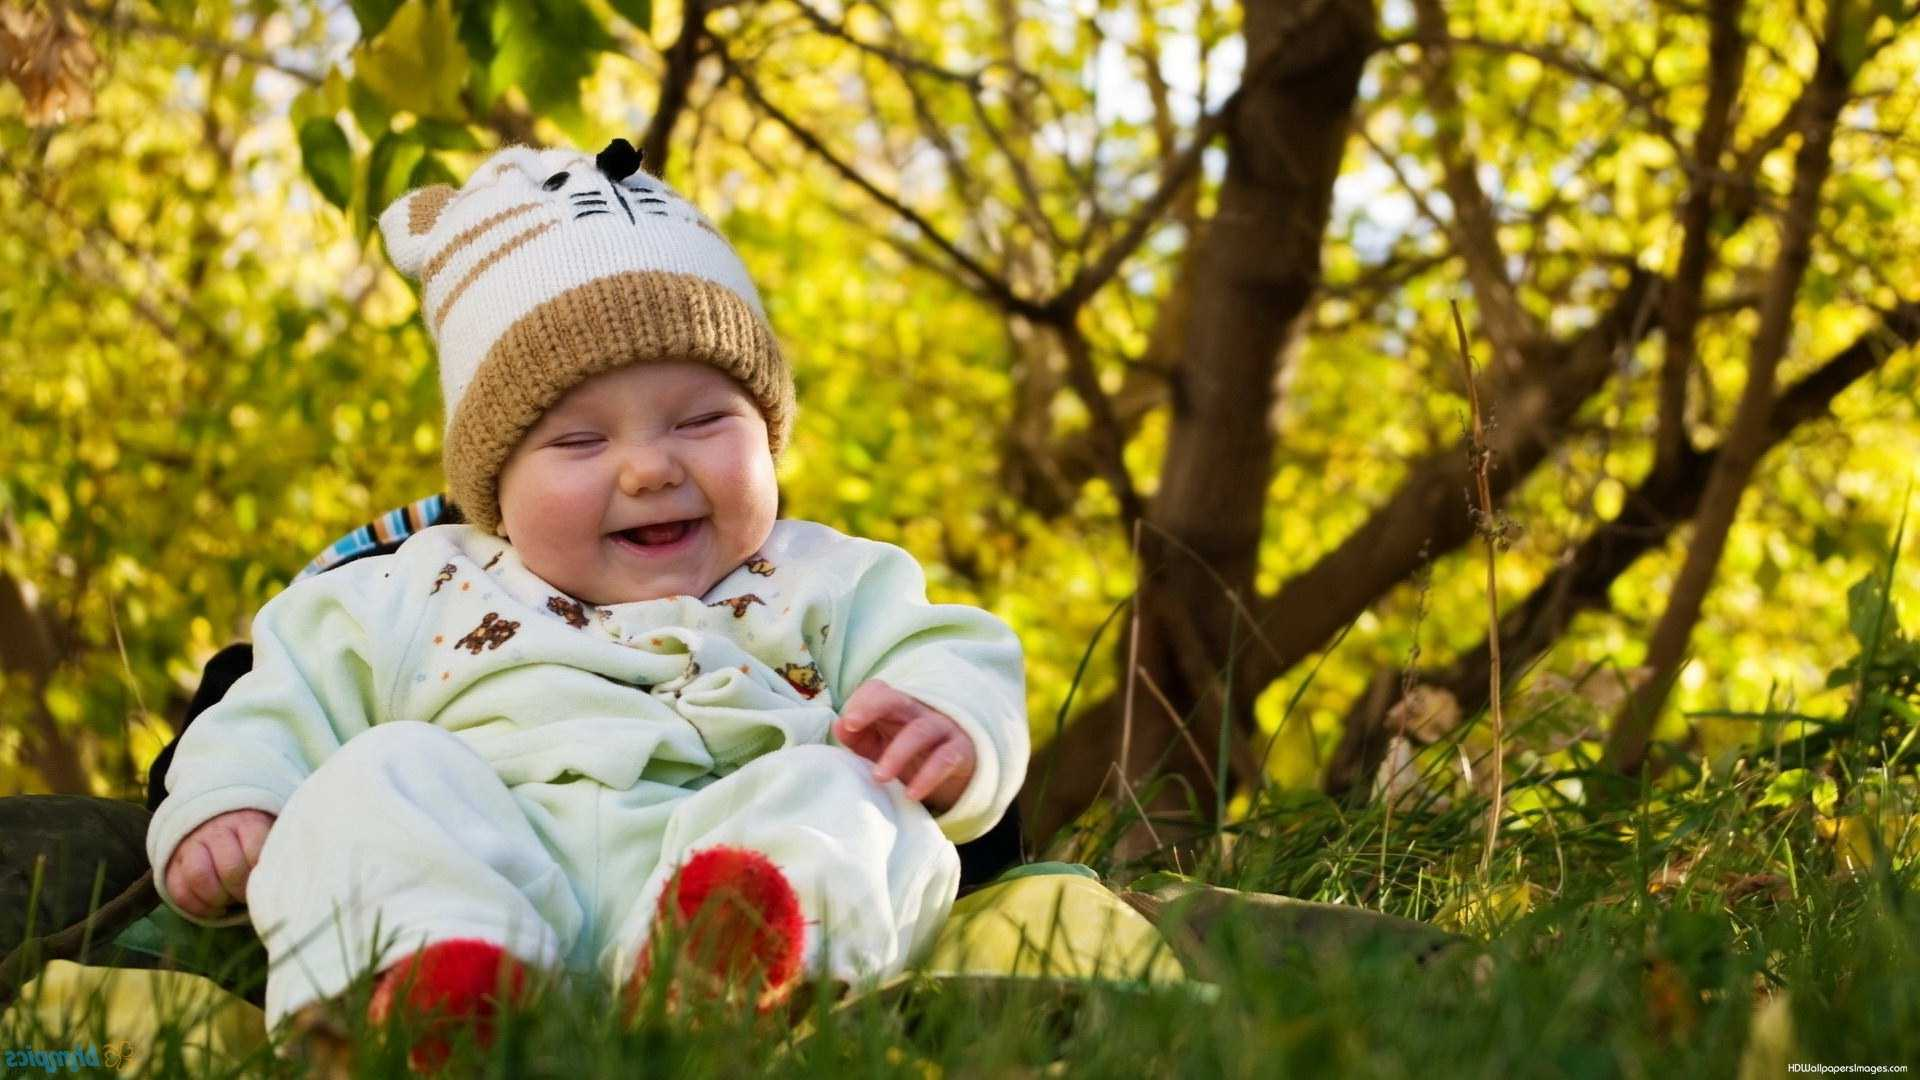 Cute Laughing Babies Wallpapers